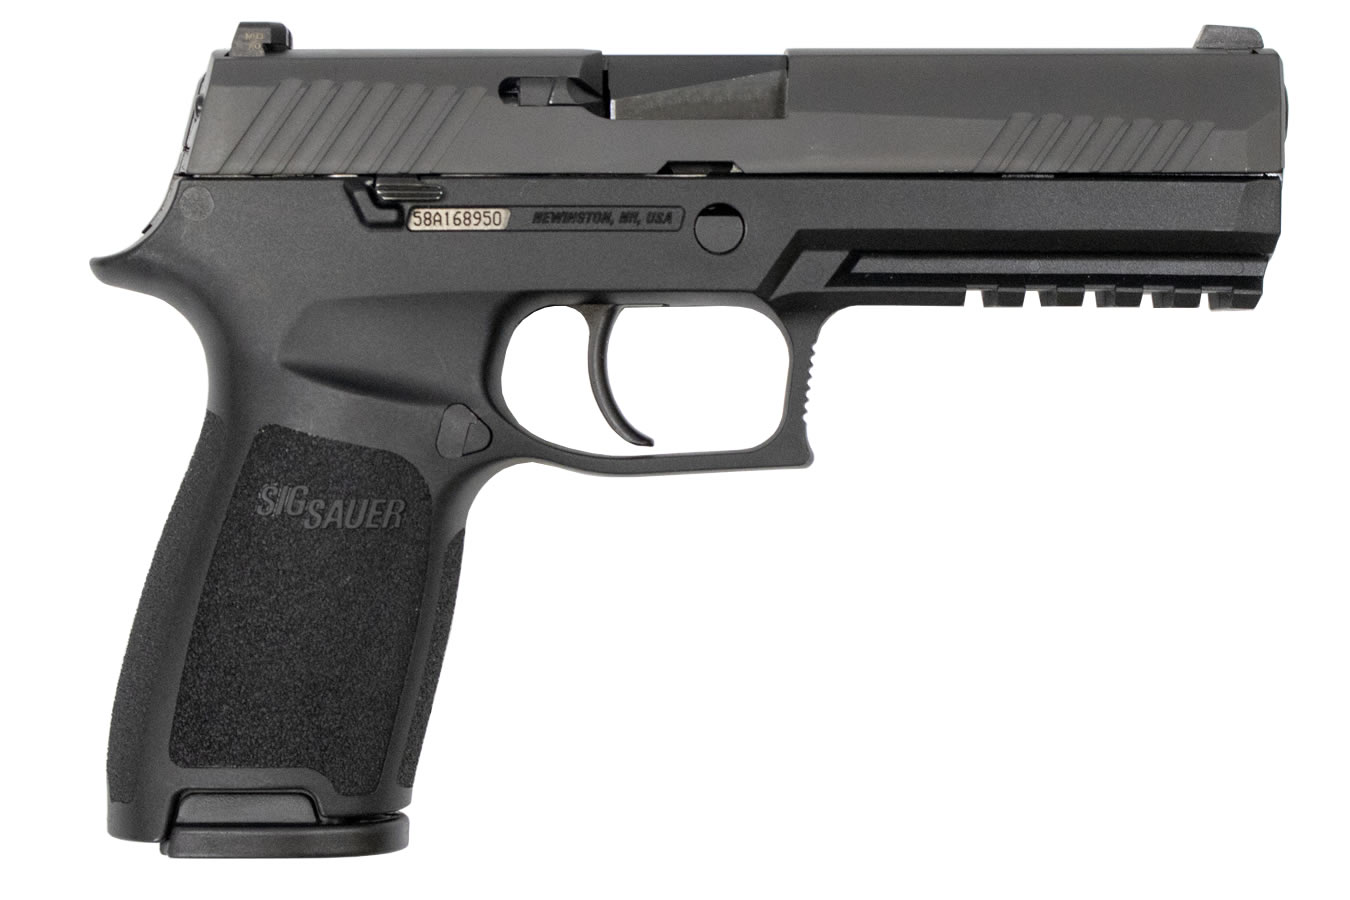 P320 FULL-SIZE 9MM WITH NIGHT SIGHTS